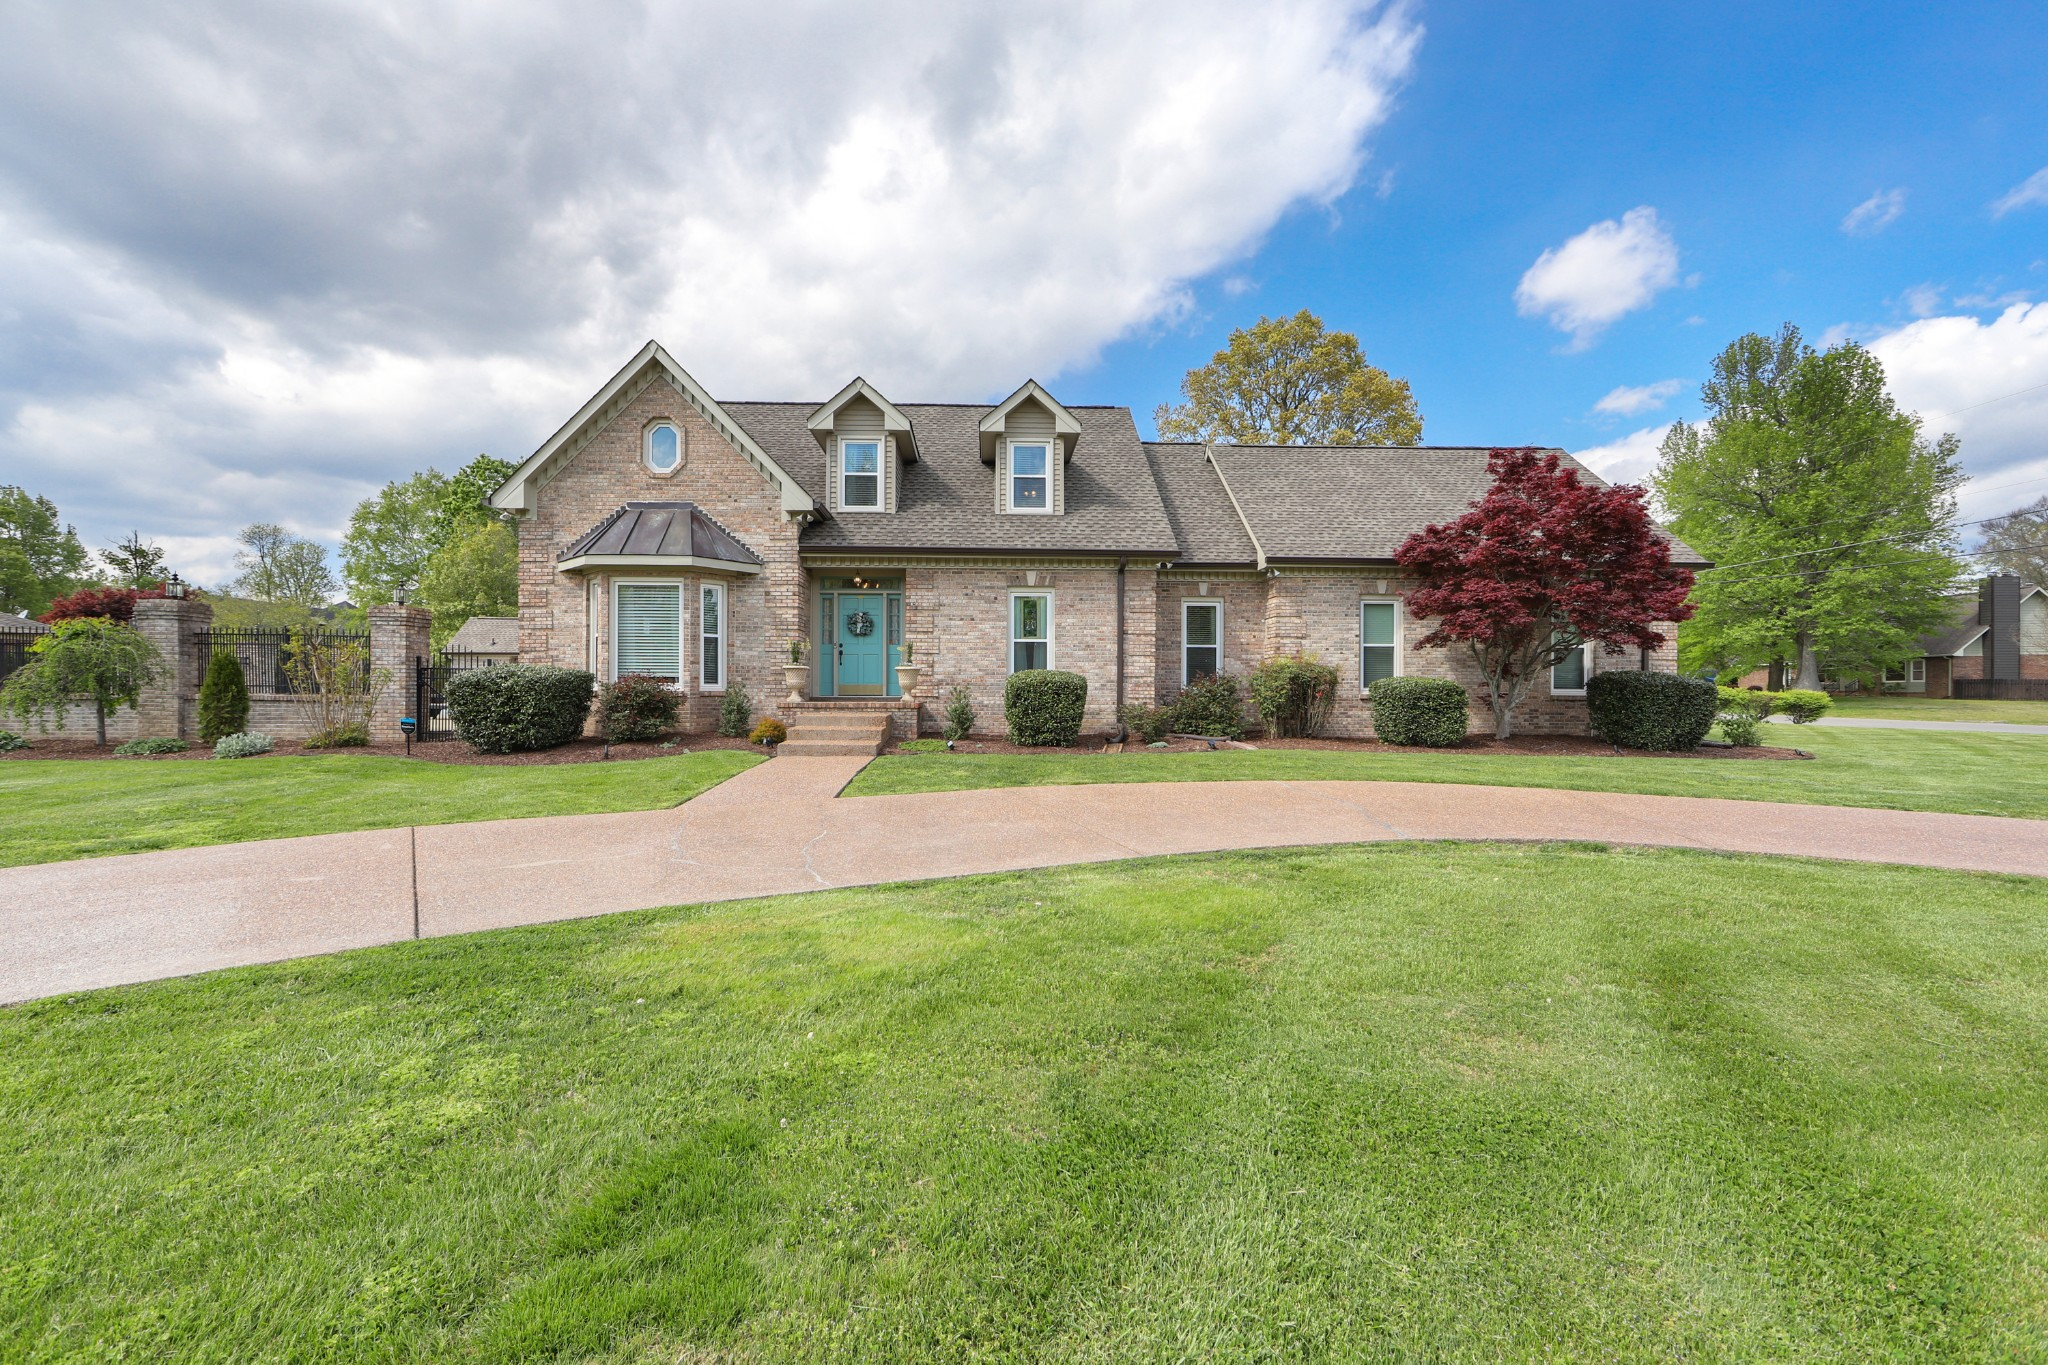 2102 Nicklaus Dr Property Photo - Springfield, TN real estate listing